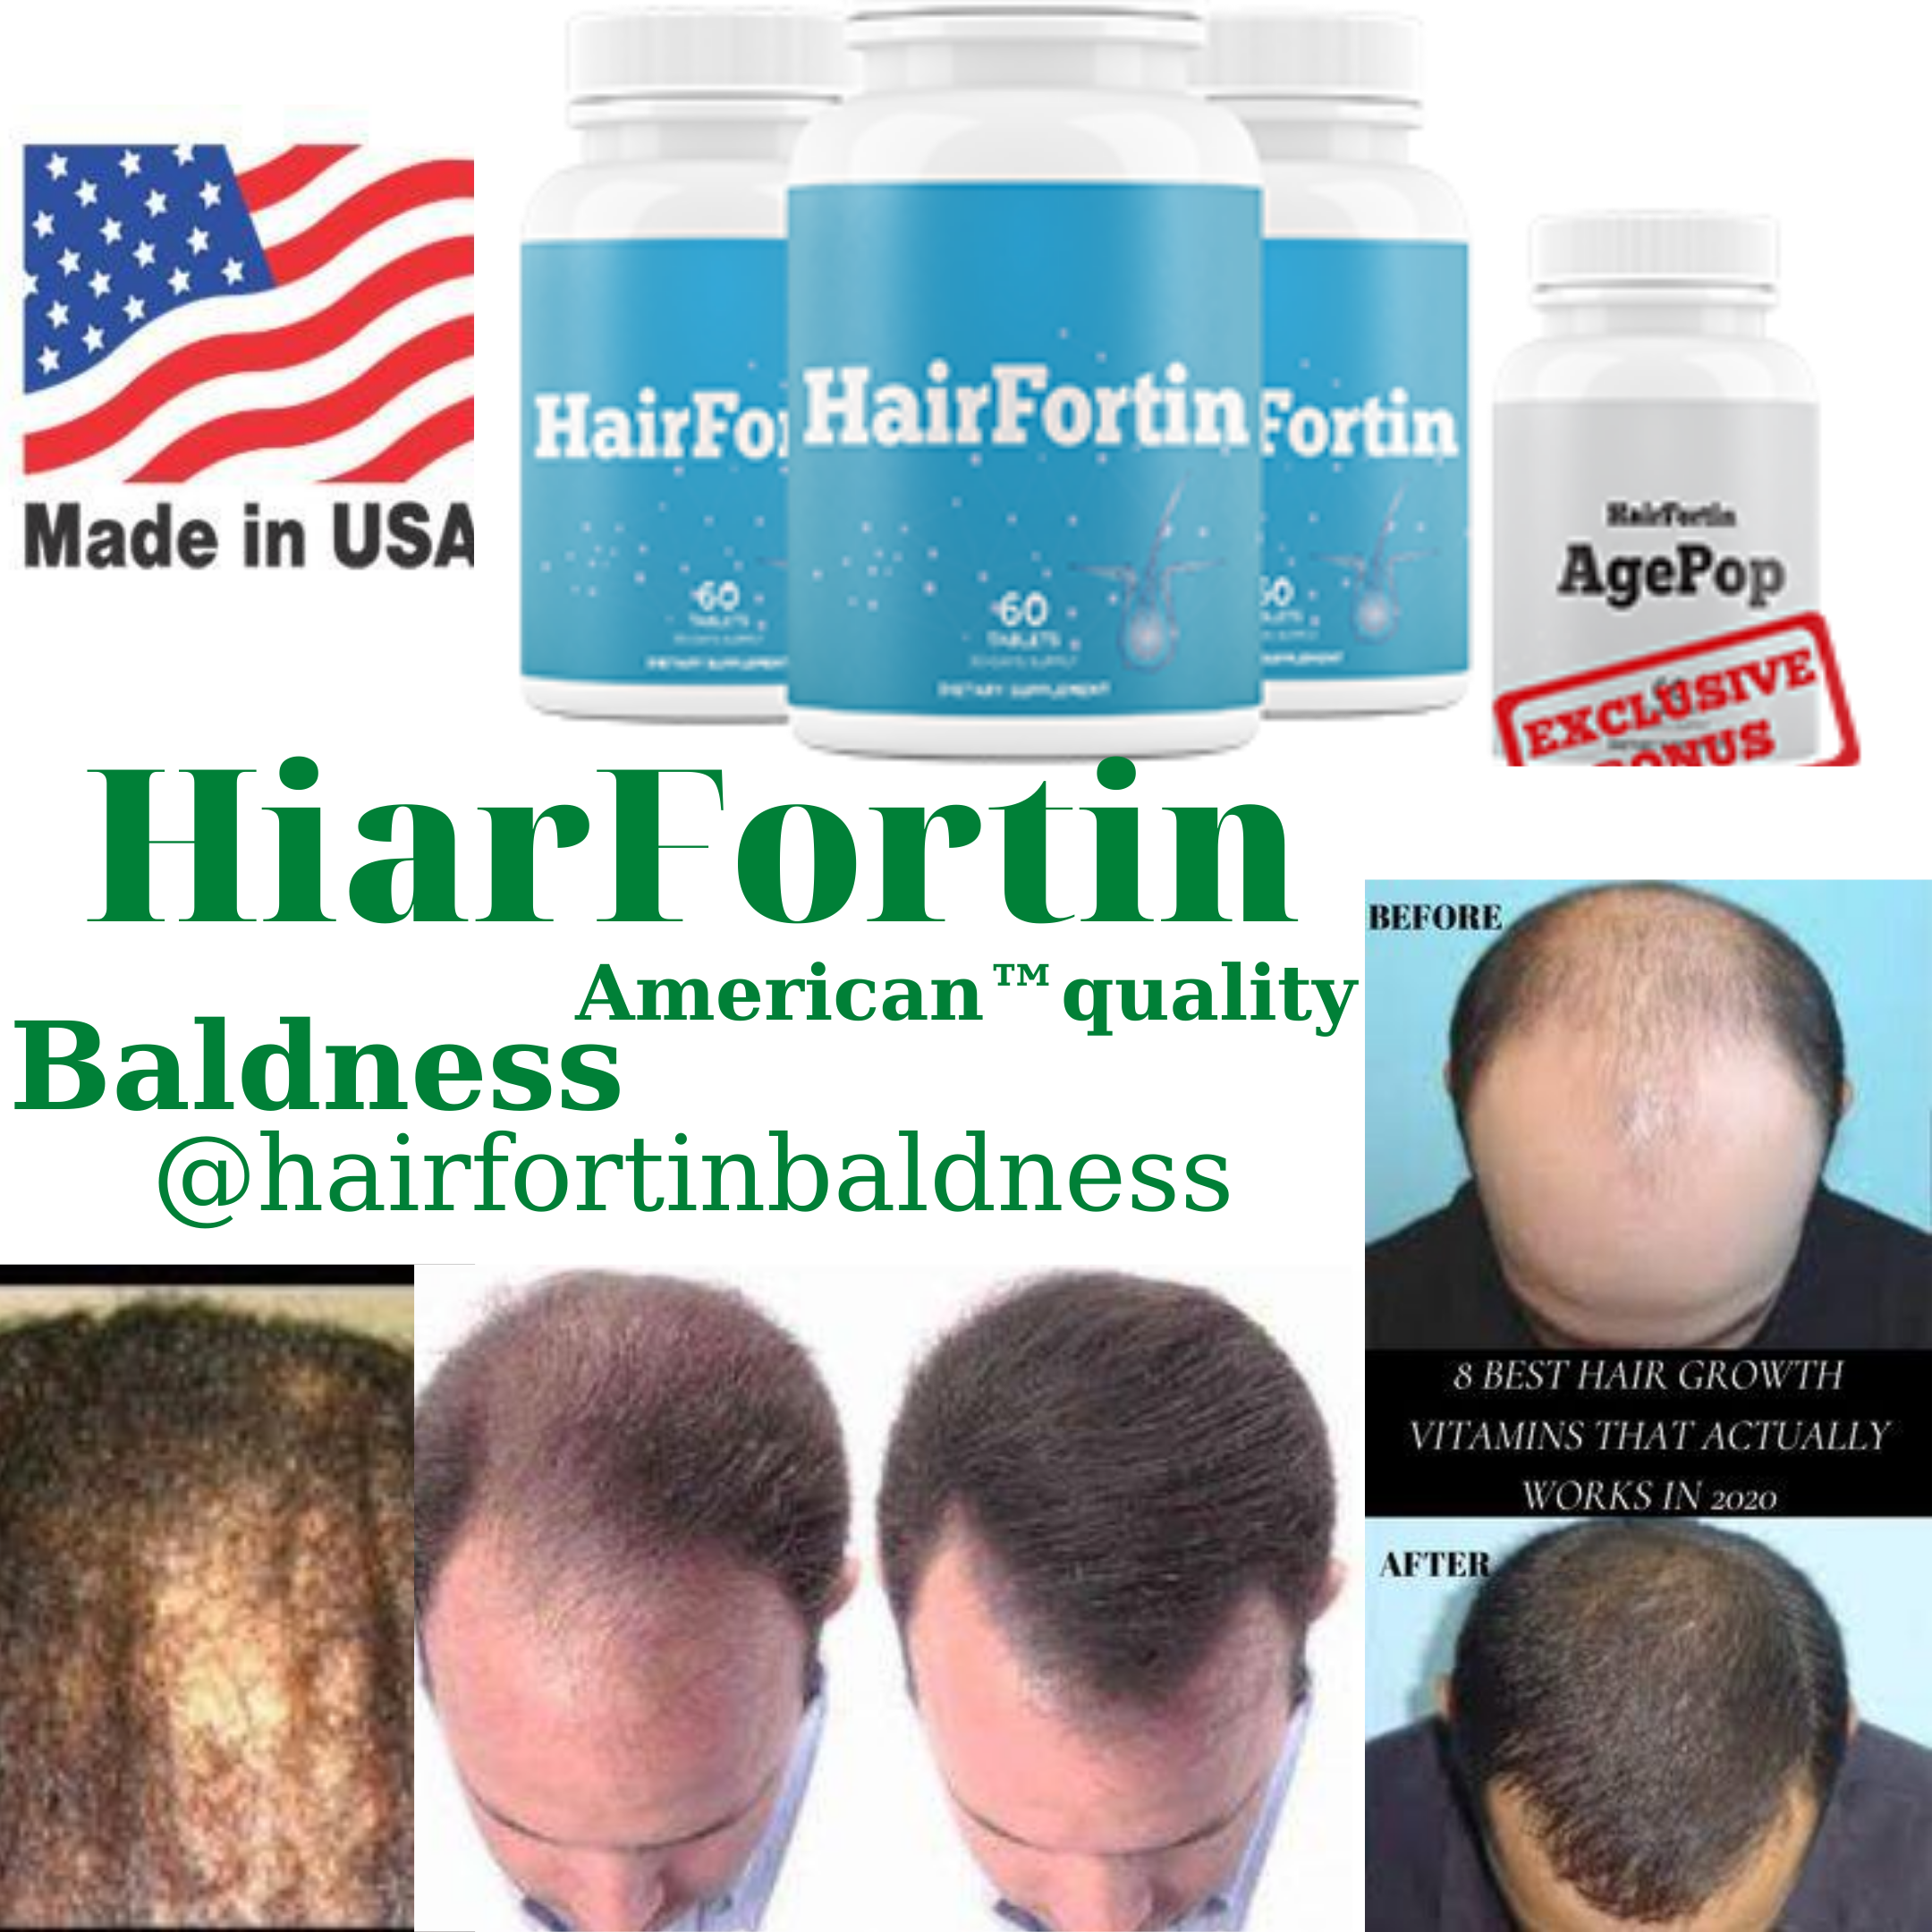 Balding Caused by Clogged Follicles That You Can Easily Clear With This  10-second Monk Ritual | Vitamins for hair growth, Baldness cure, Best hair  growth vitamins